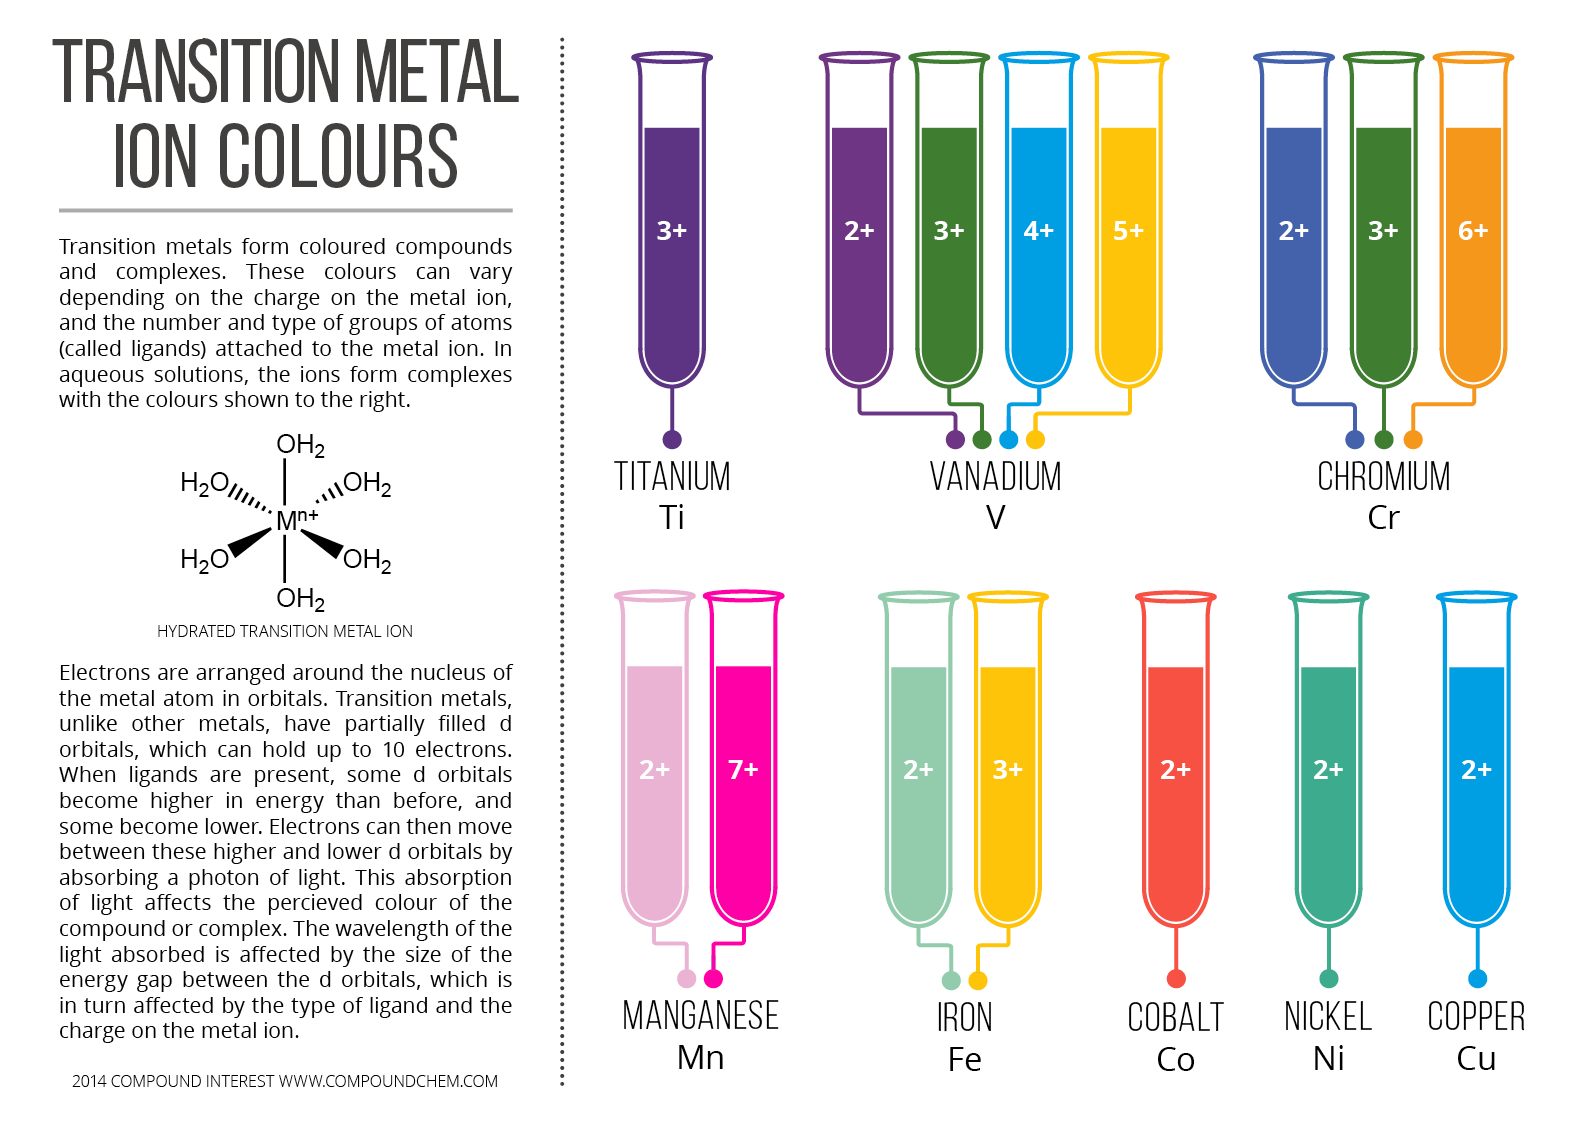 http://www.compoundchem.com/2014/03/05/colours-of-transition-metal-ions-in-aqueous-solution/